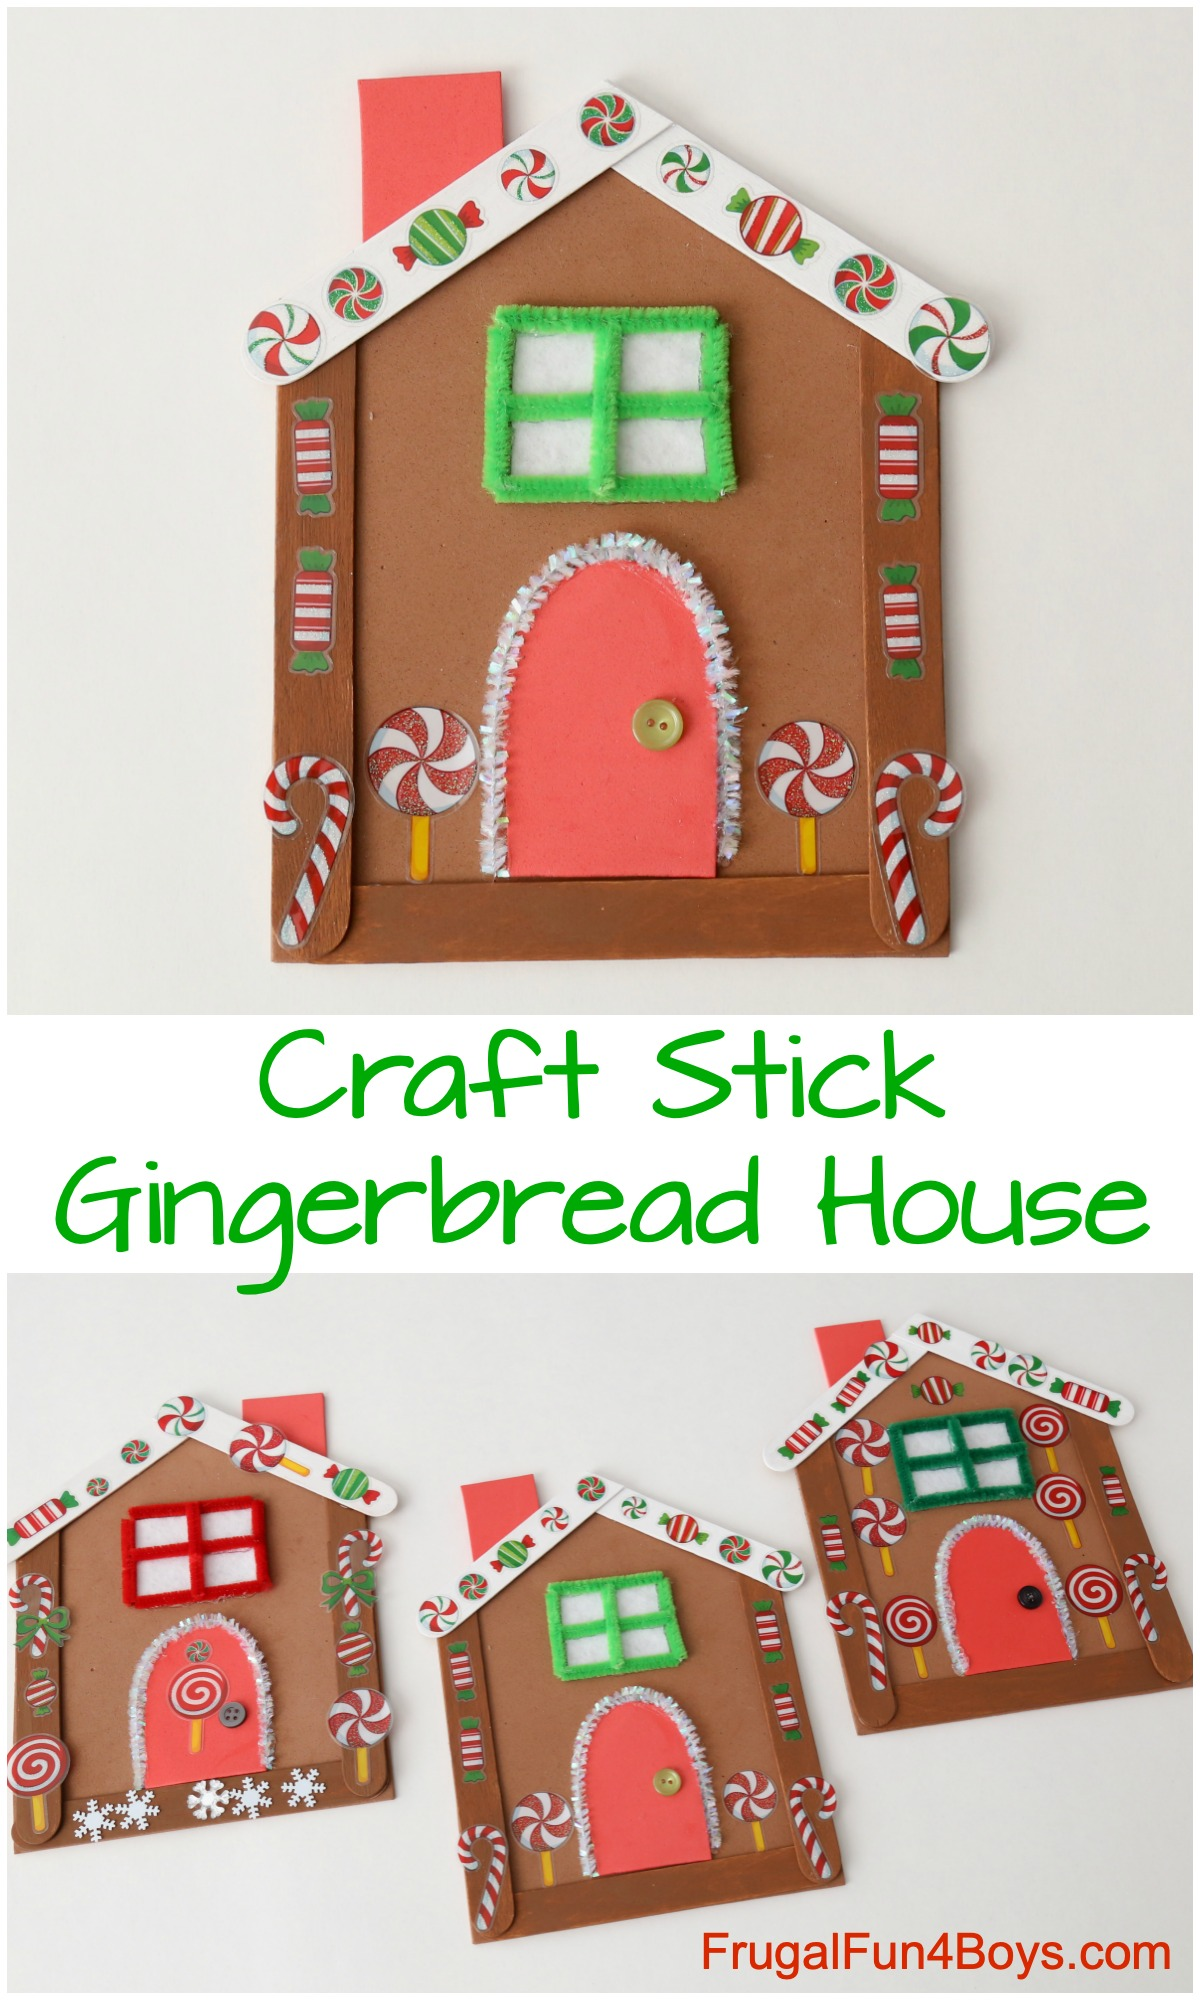 This Gingerbread House Is The Most Adorable Christmas